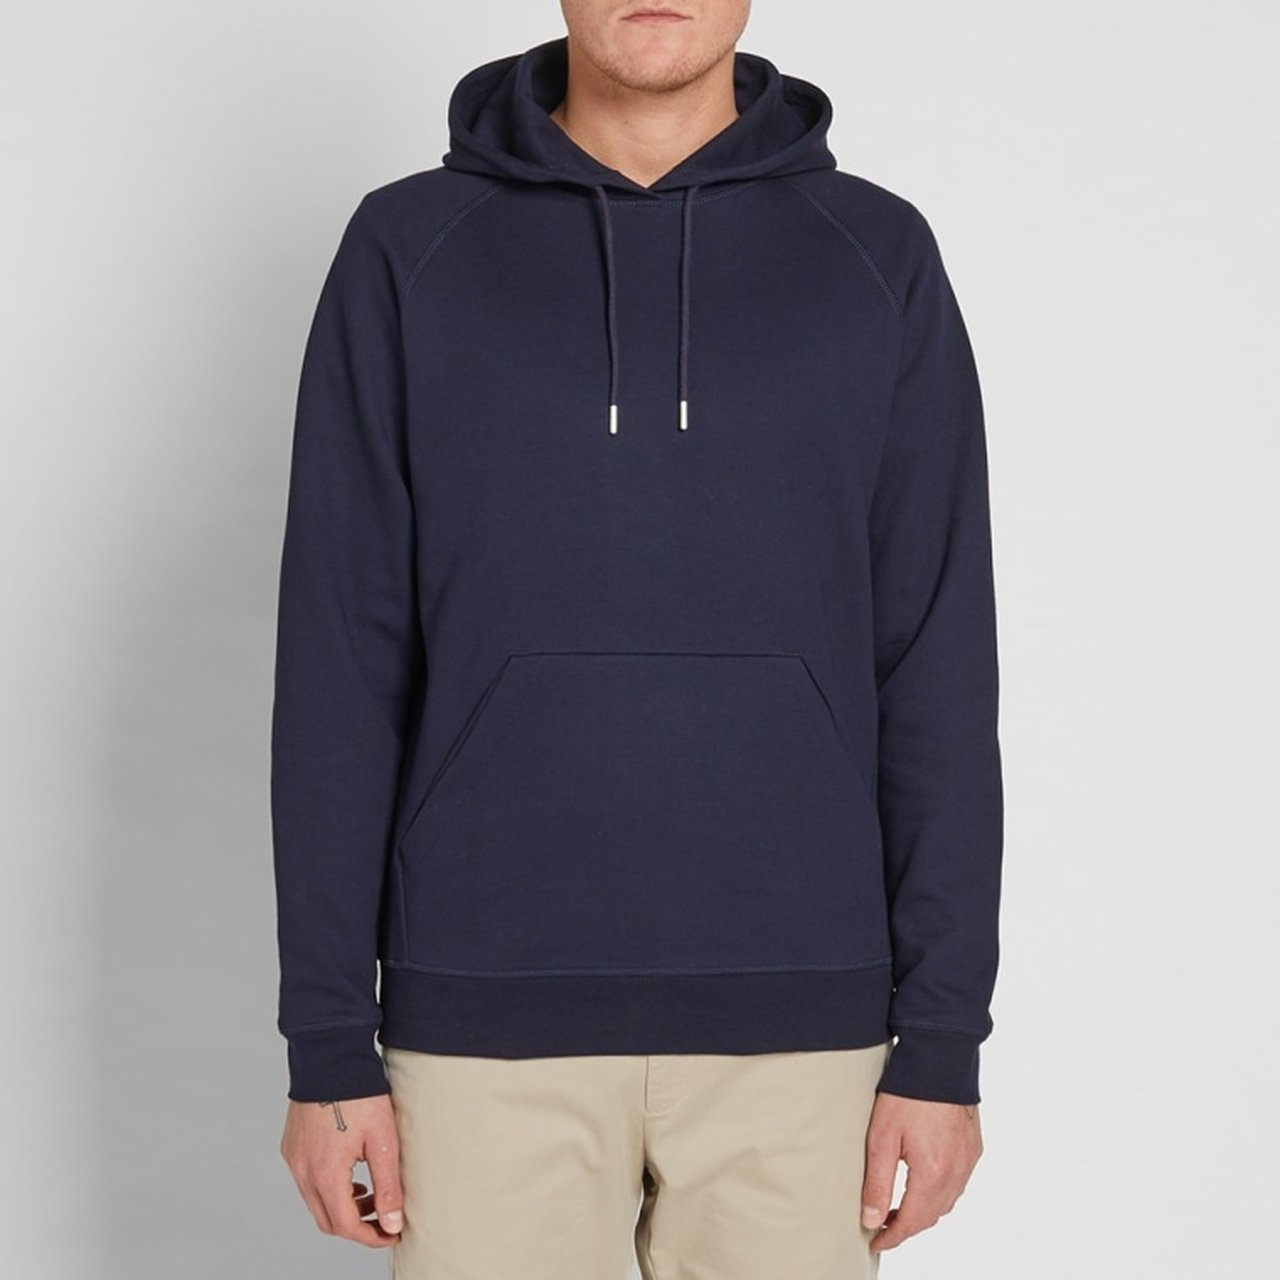 b93332da1ce @danieljosefbruton. last year. Manchester, United Kingdom. Norse projects  ketel hoody. Still £130 at end clothing. Ace quality.